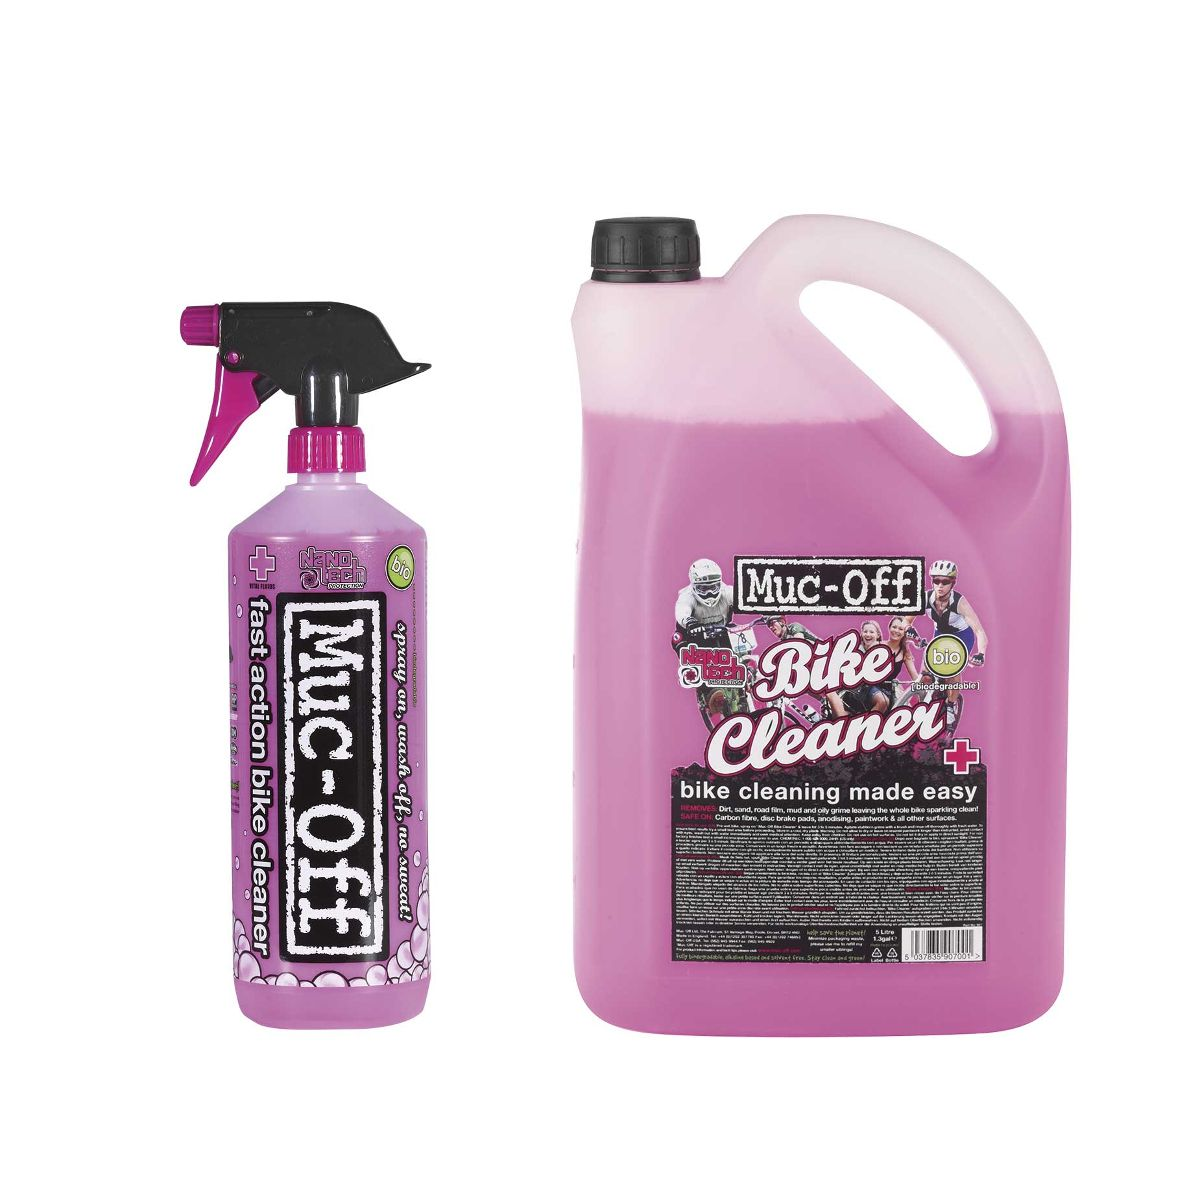 Muc-Off Bike Cleaner set offer 1 litre + 5 litre bottle | polish_and_lubricant_component